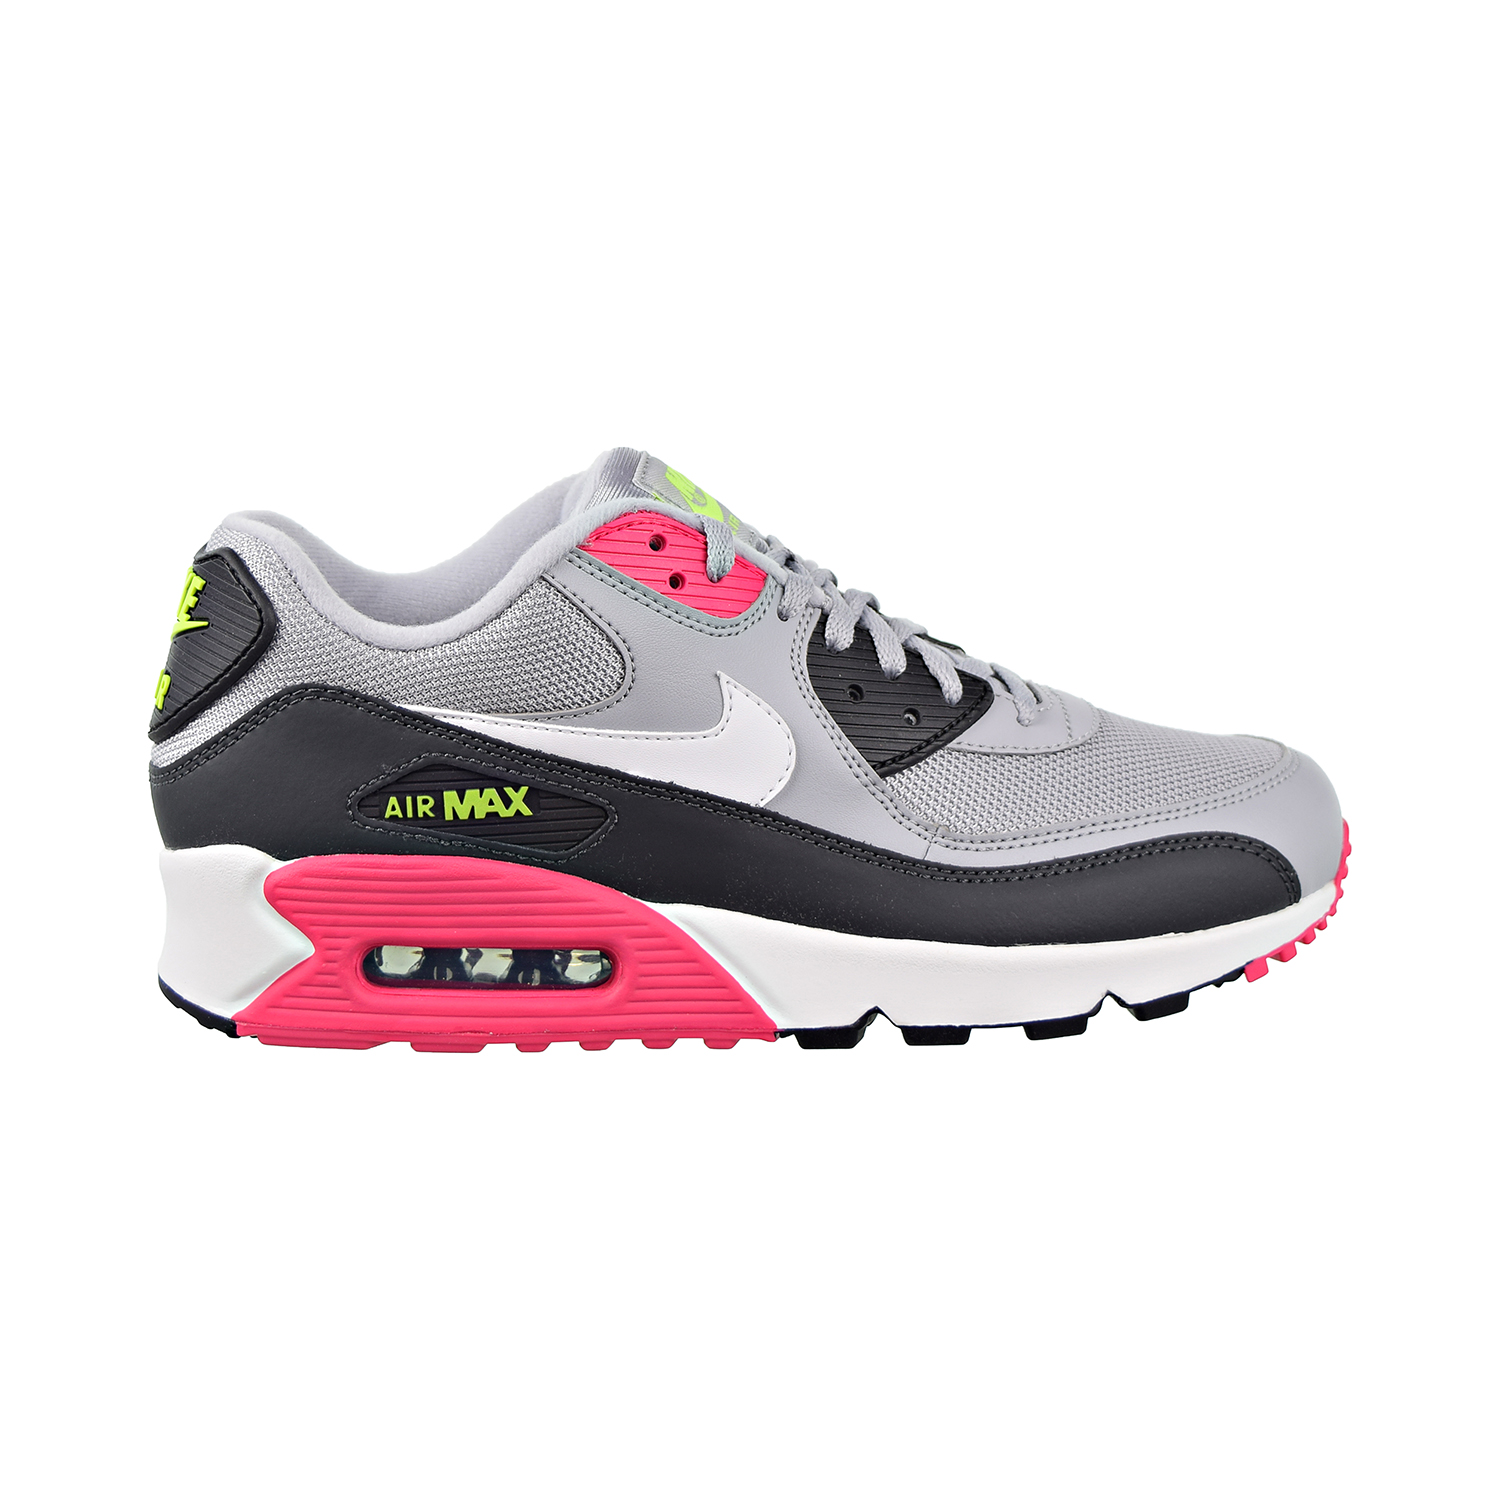 Nike Air Max 90 Essential Mens AJ1285 020 Grey Pink Volt Running Shoes Size 9